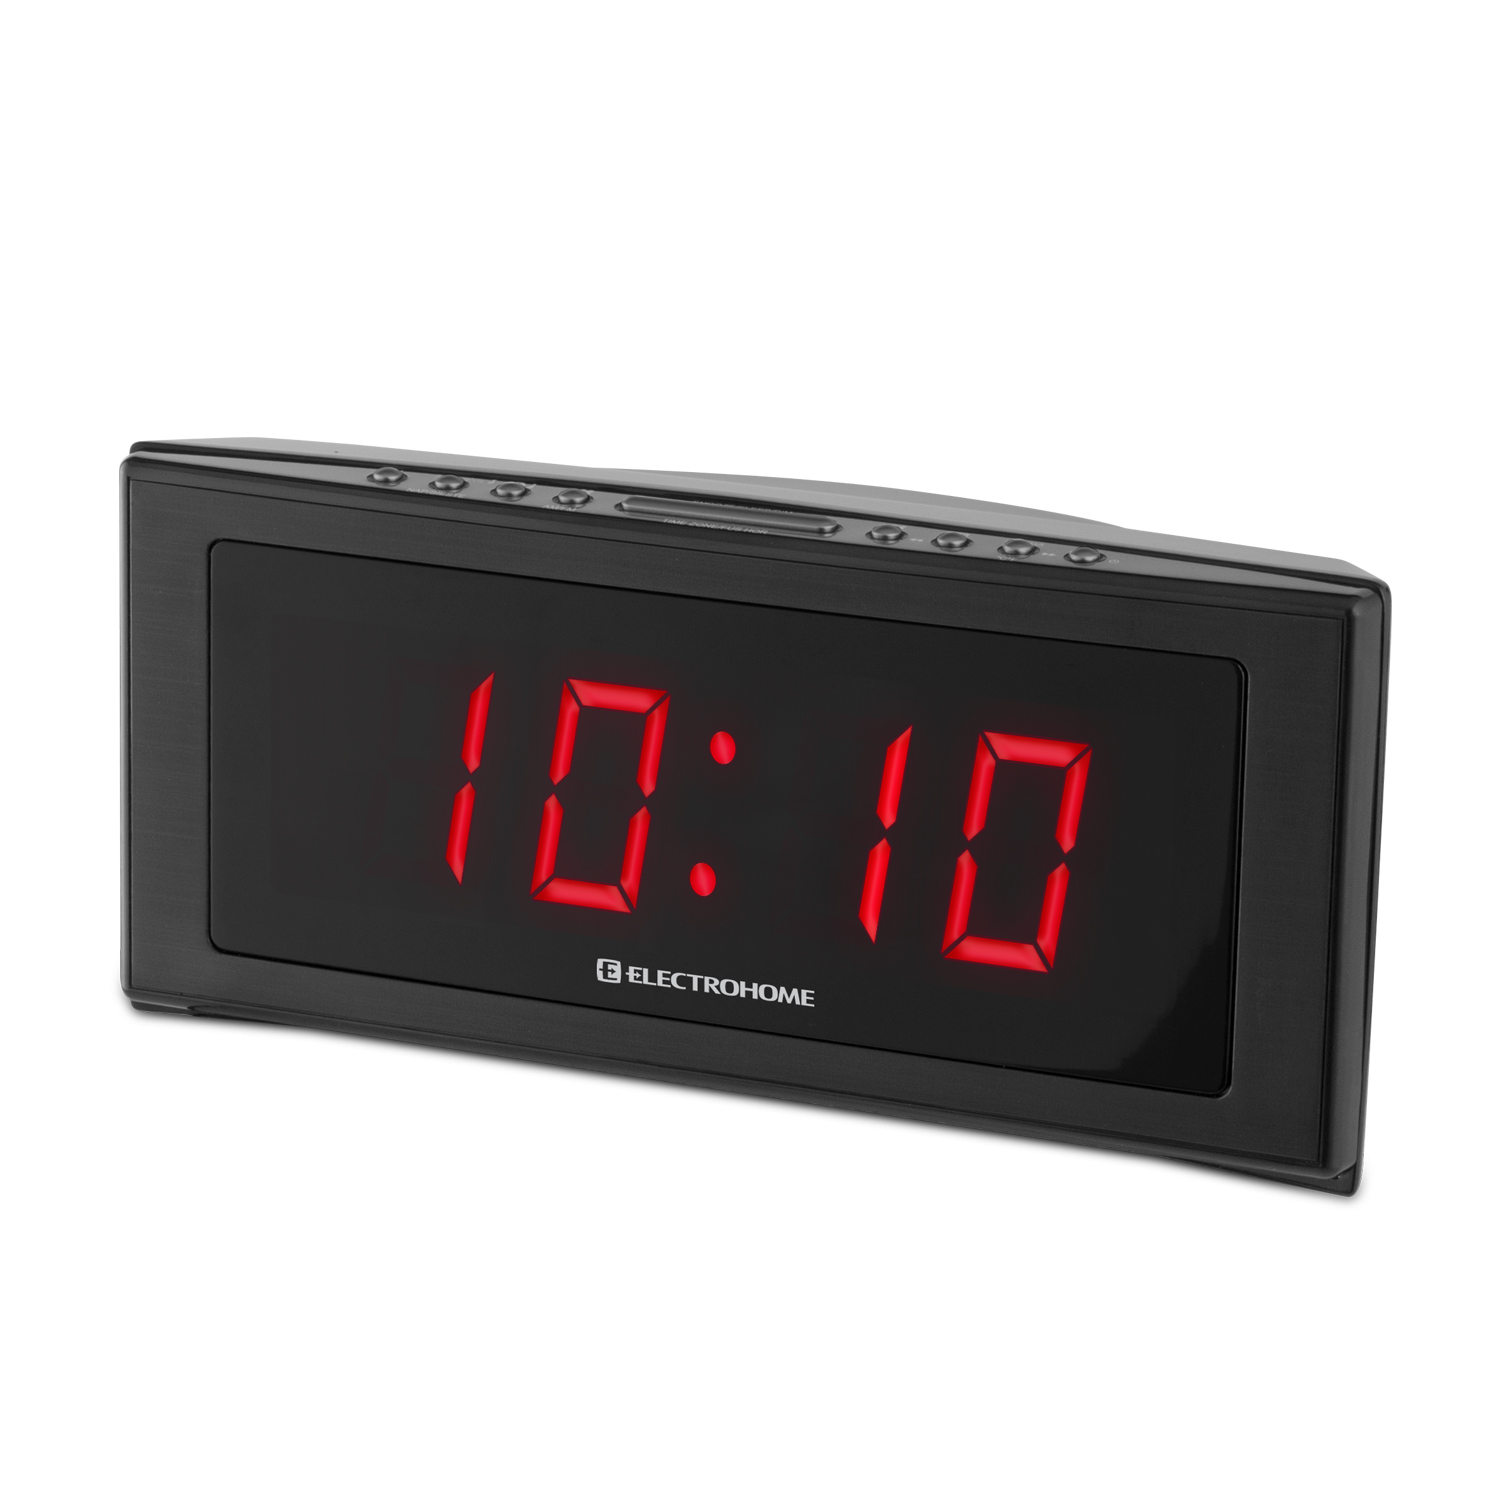 "Electrohome� 1.8"" Jumbo LED Alarm Clock Radio with Battery Backup, Auto Time Set, Digital AM/FM Radio & Dual Alarm at Sears.com"